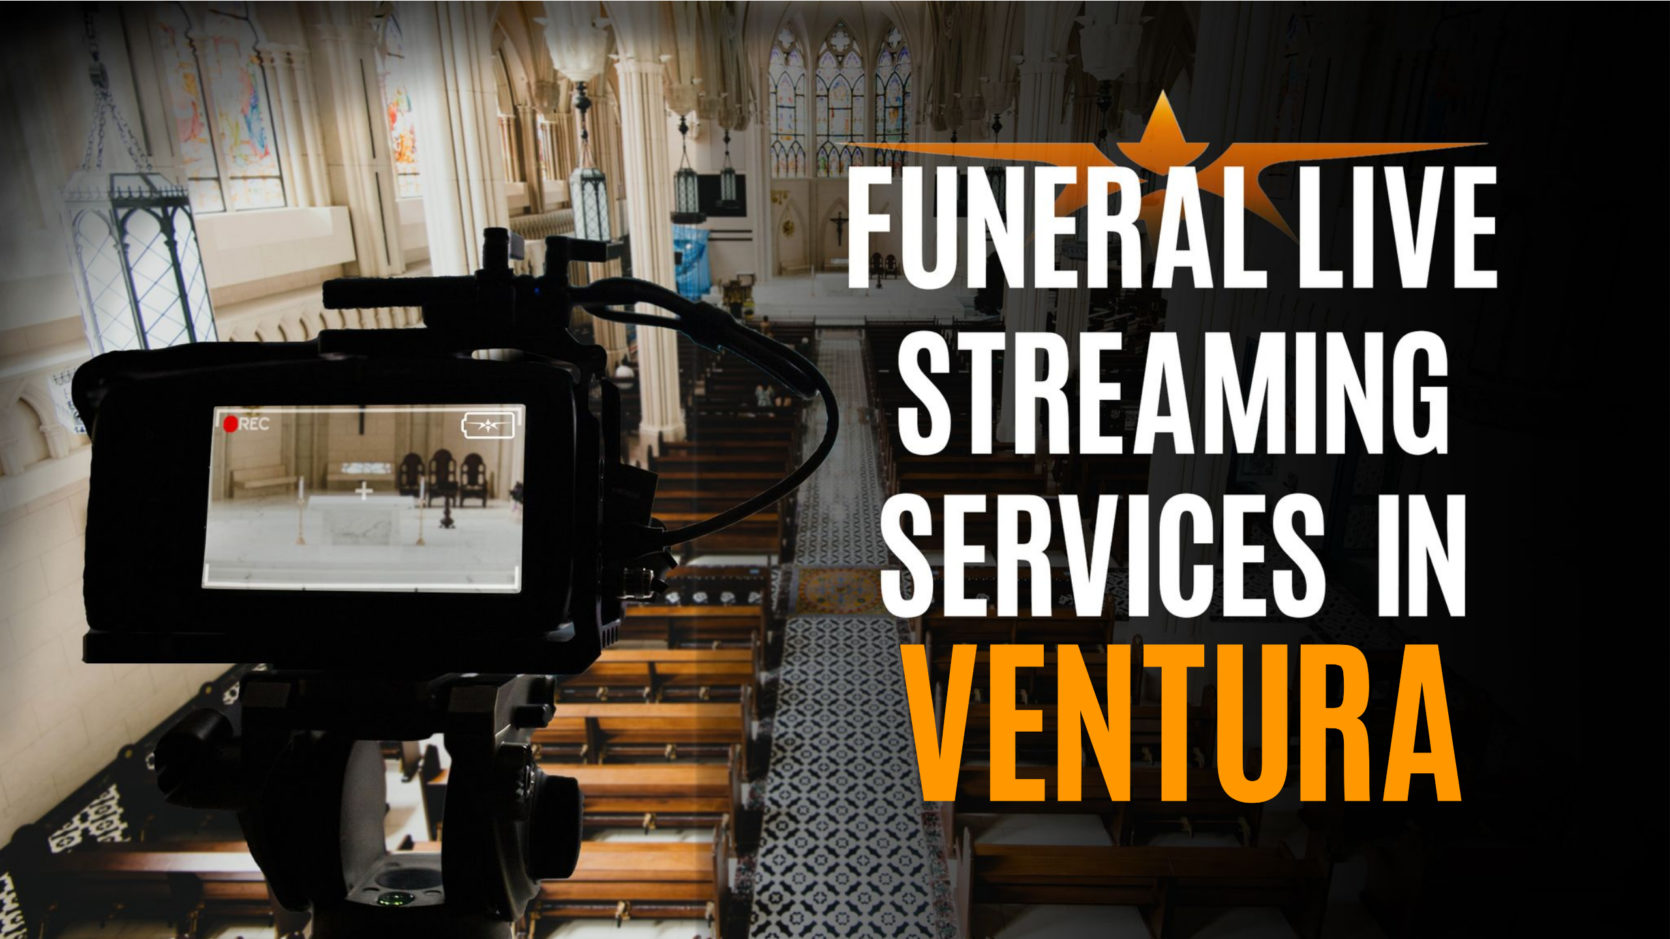 Funeral Live Streaming Services in Ventura